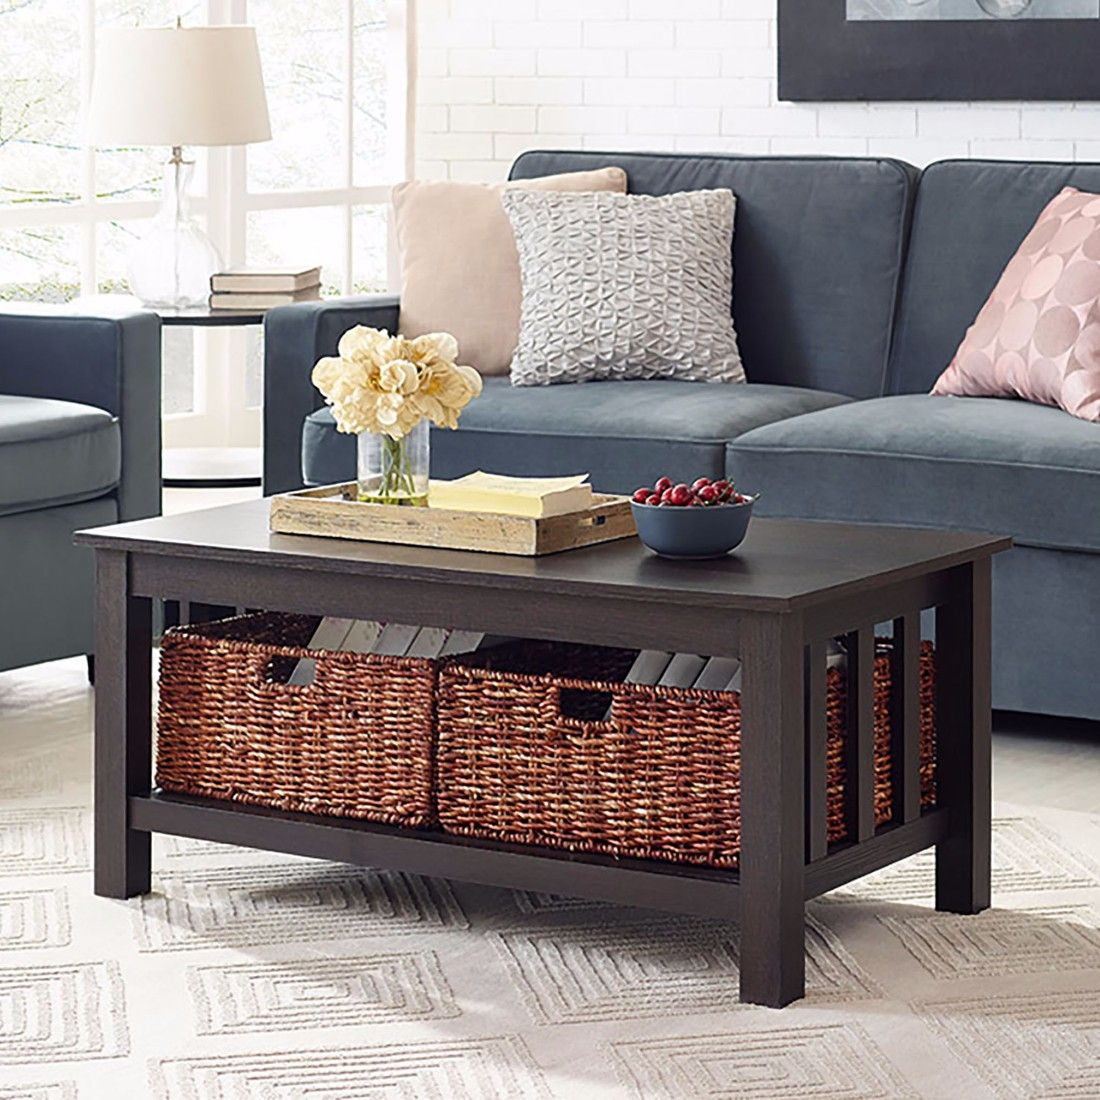 40 Wood Storage Coffee Table W Totes In Espresso Walker Edison C40mstes Coffee Table With Storage Living Room